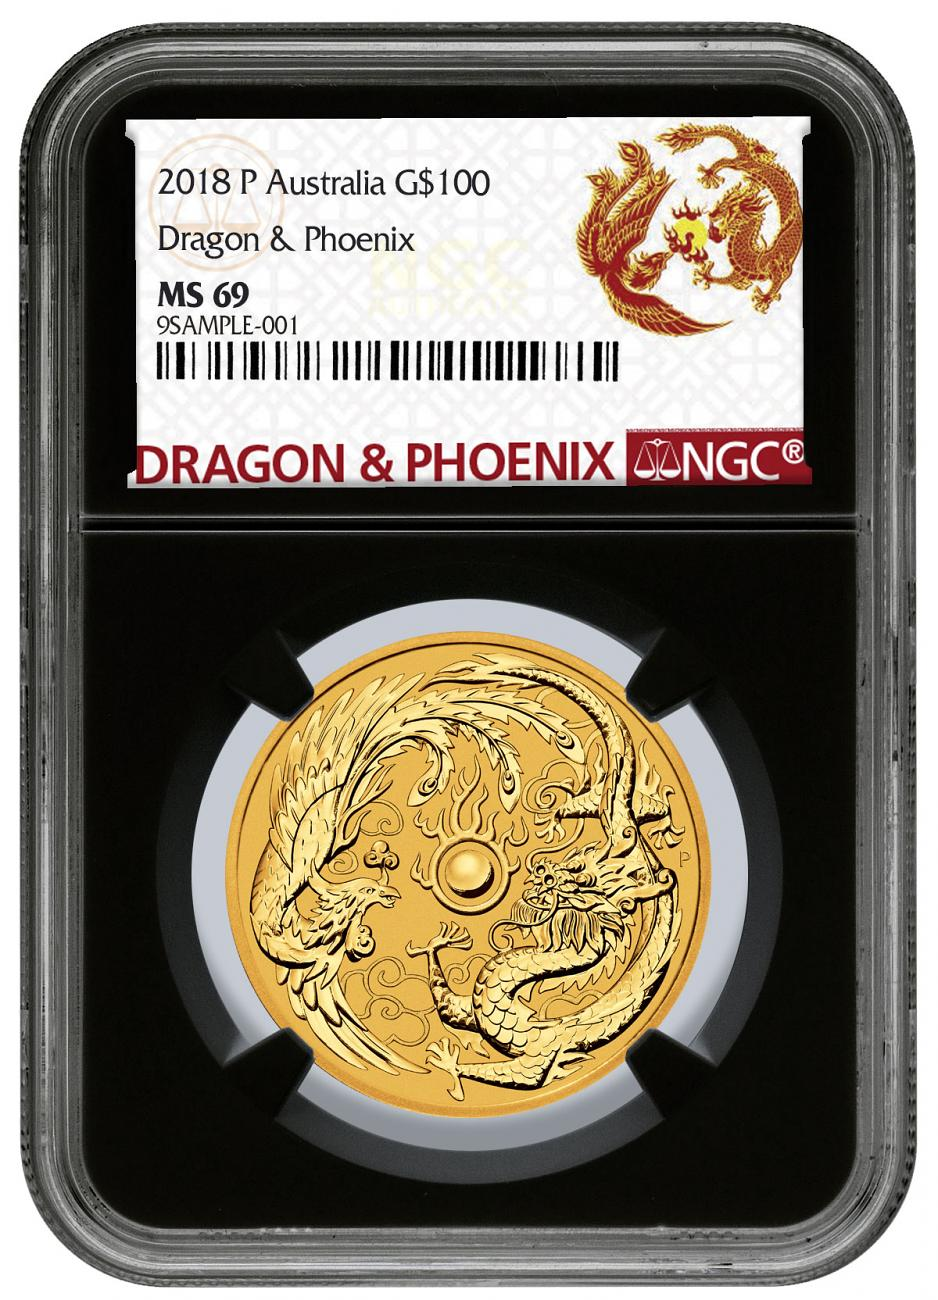 2018 Australia 1 oz Gold Dragon & Phoenix $100 Coin NGC MS69 Black Core Holder Exclusive Dragon & Phoenix Label